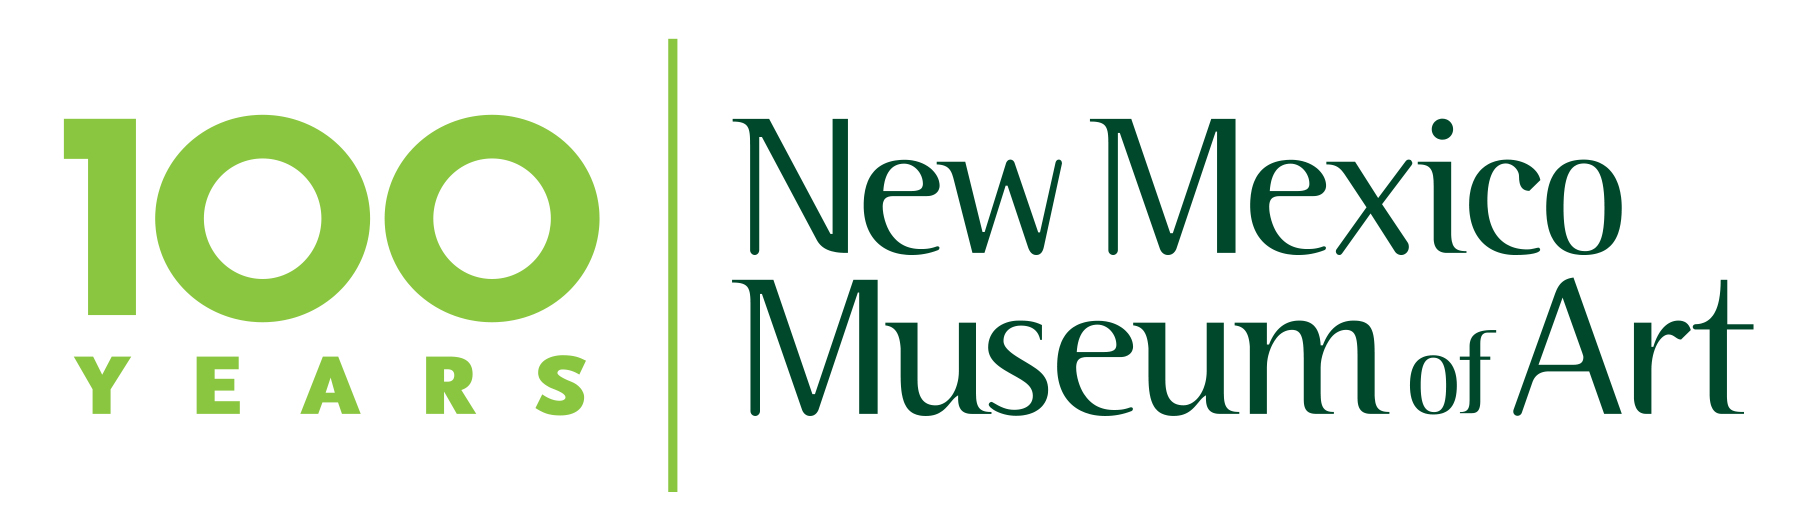 NMMoA100_logo-color-horizontal.jpg